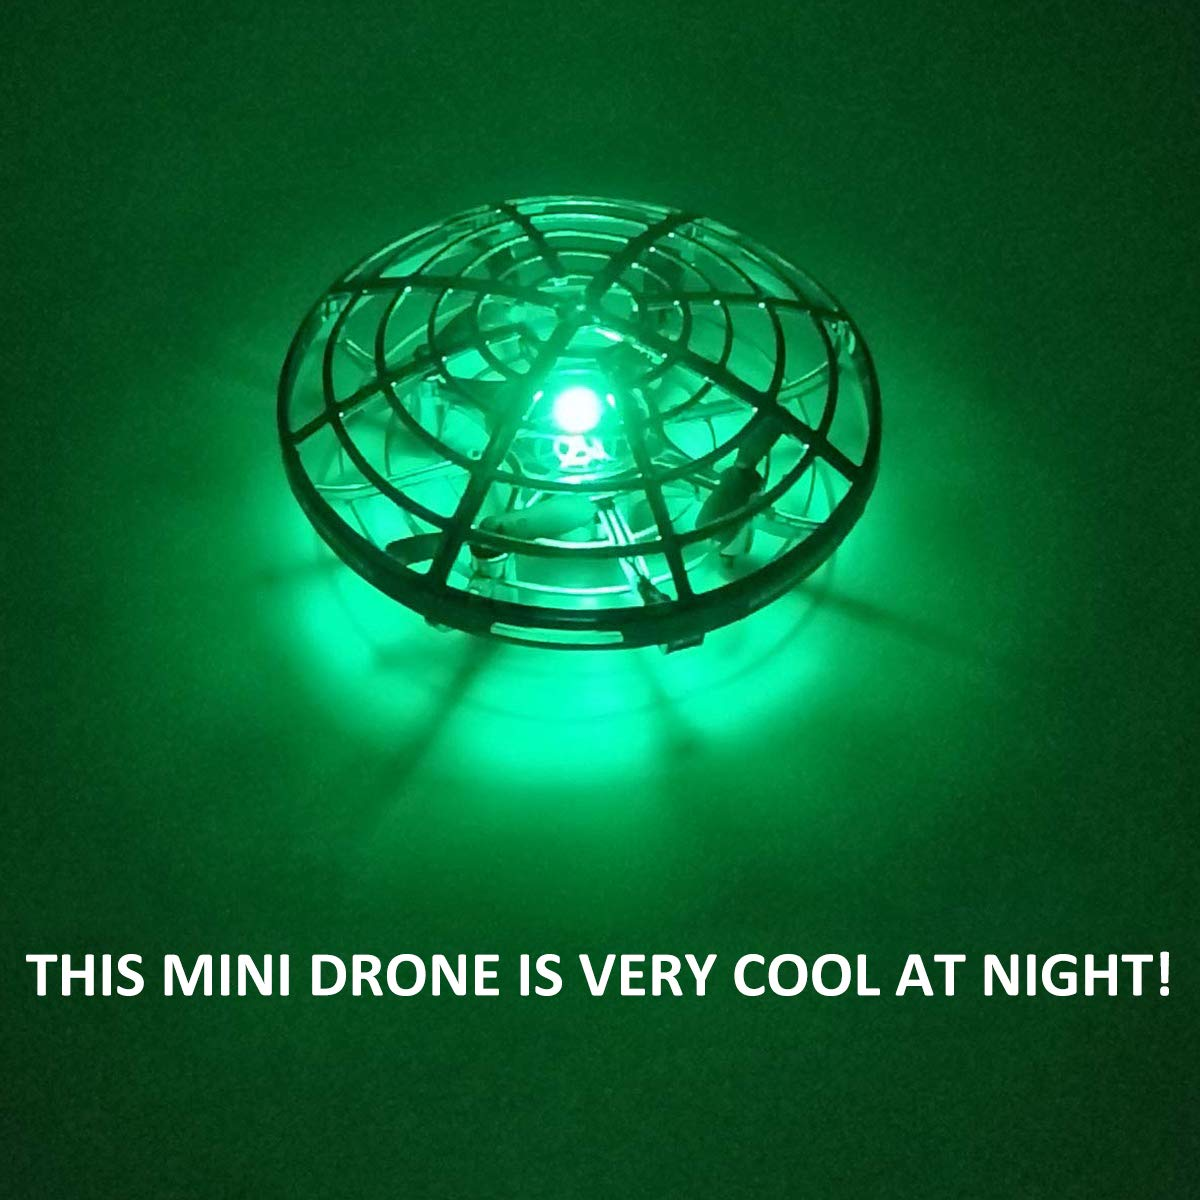 Mini Drone for Kids Beginner Hand Controlled,UFO Flying Ball Toys with 360/° Rotating Hovering and LED Lights,Quadcopter Drone Toy Indoor Outdoor,RC Helicopter Boys Girls St Patricks Birthday Gift Jupitaz